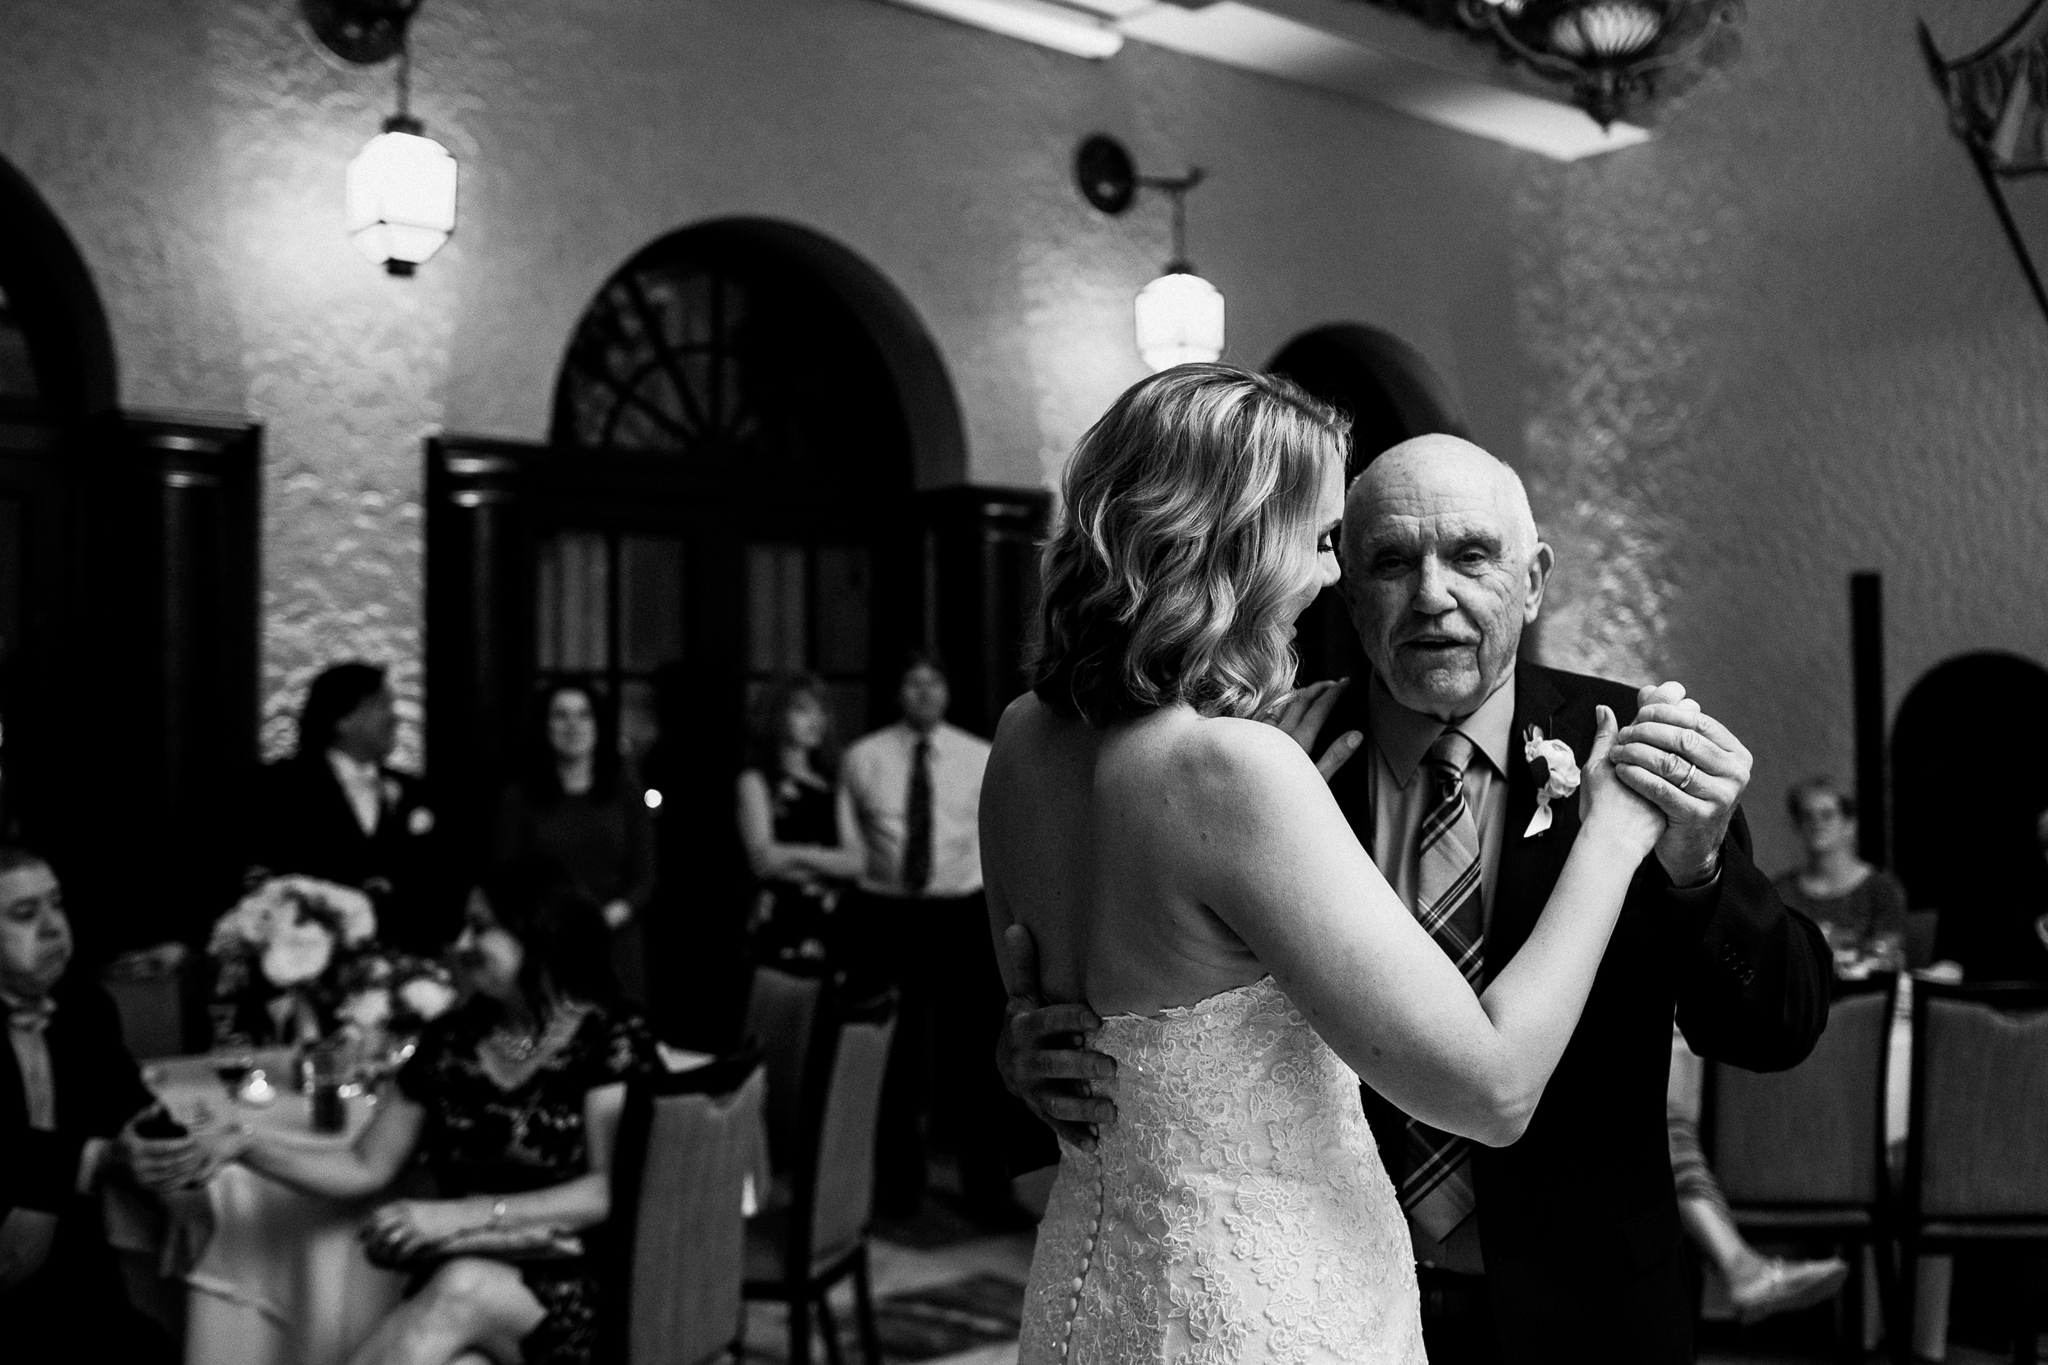 hotel_baker_st_charles_IL_wedding_photographer_0072.jpg